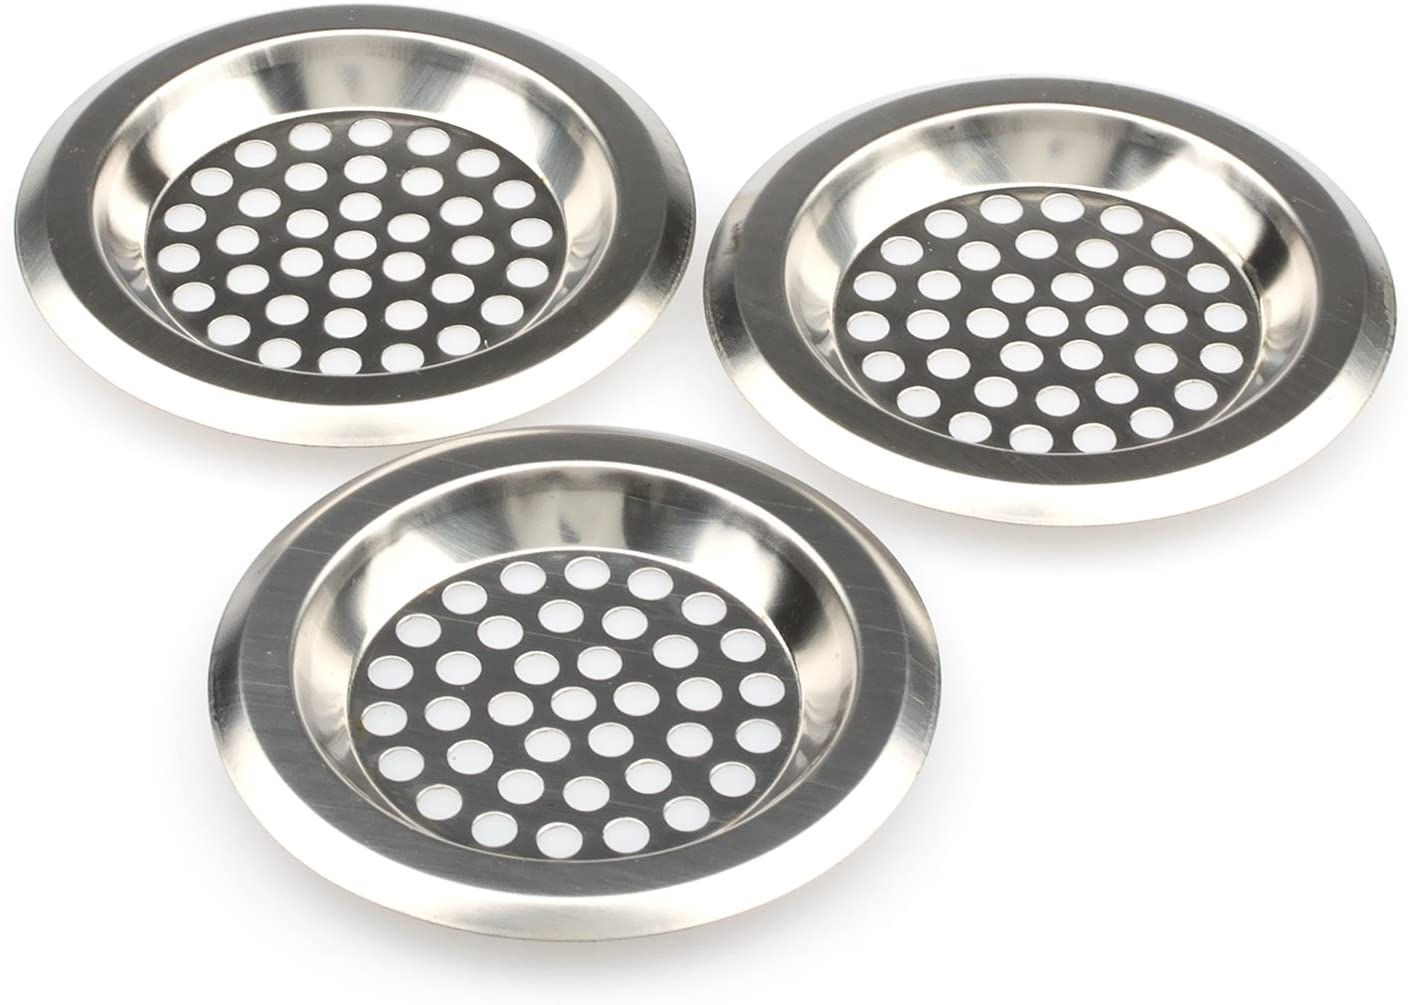 Kitchen And Bathroom Sink Strainer Stainless Steel Bathub Drain Cover Sink Drain Protector Bathroom Sink Drain Strainer Pack Of 3 Amazon Com